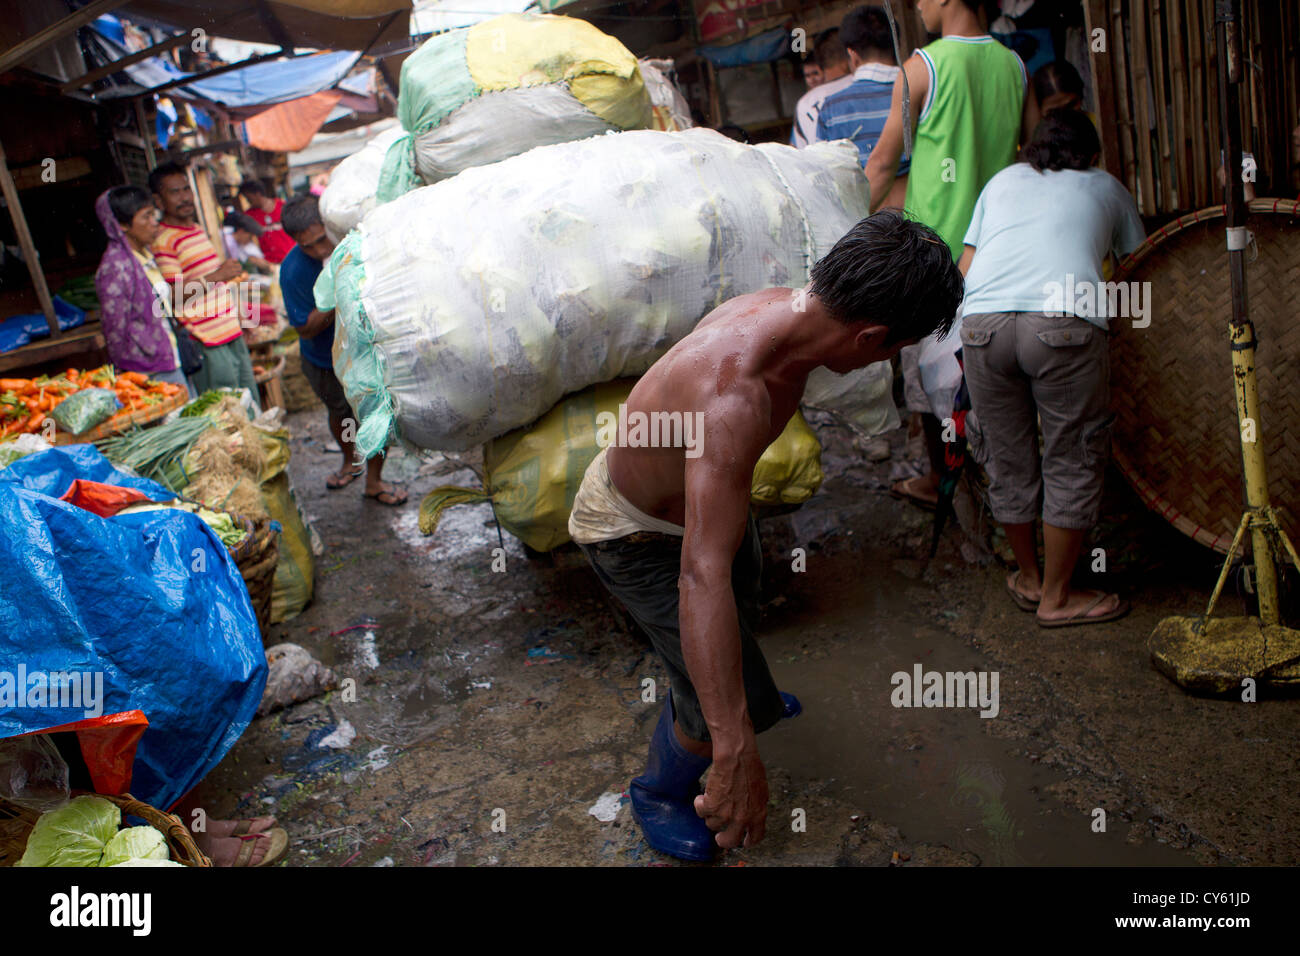 Market traders in Carbon market.A man pulls a  heavy load of vegetables,Cebu City,Philippines - Stock Image